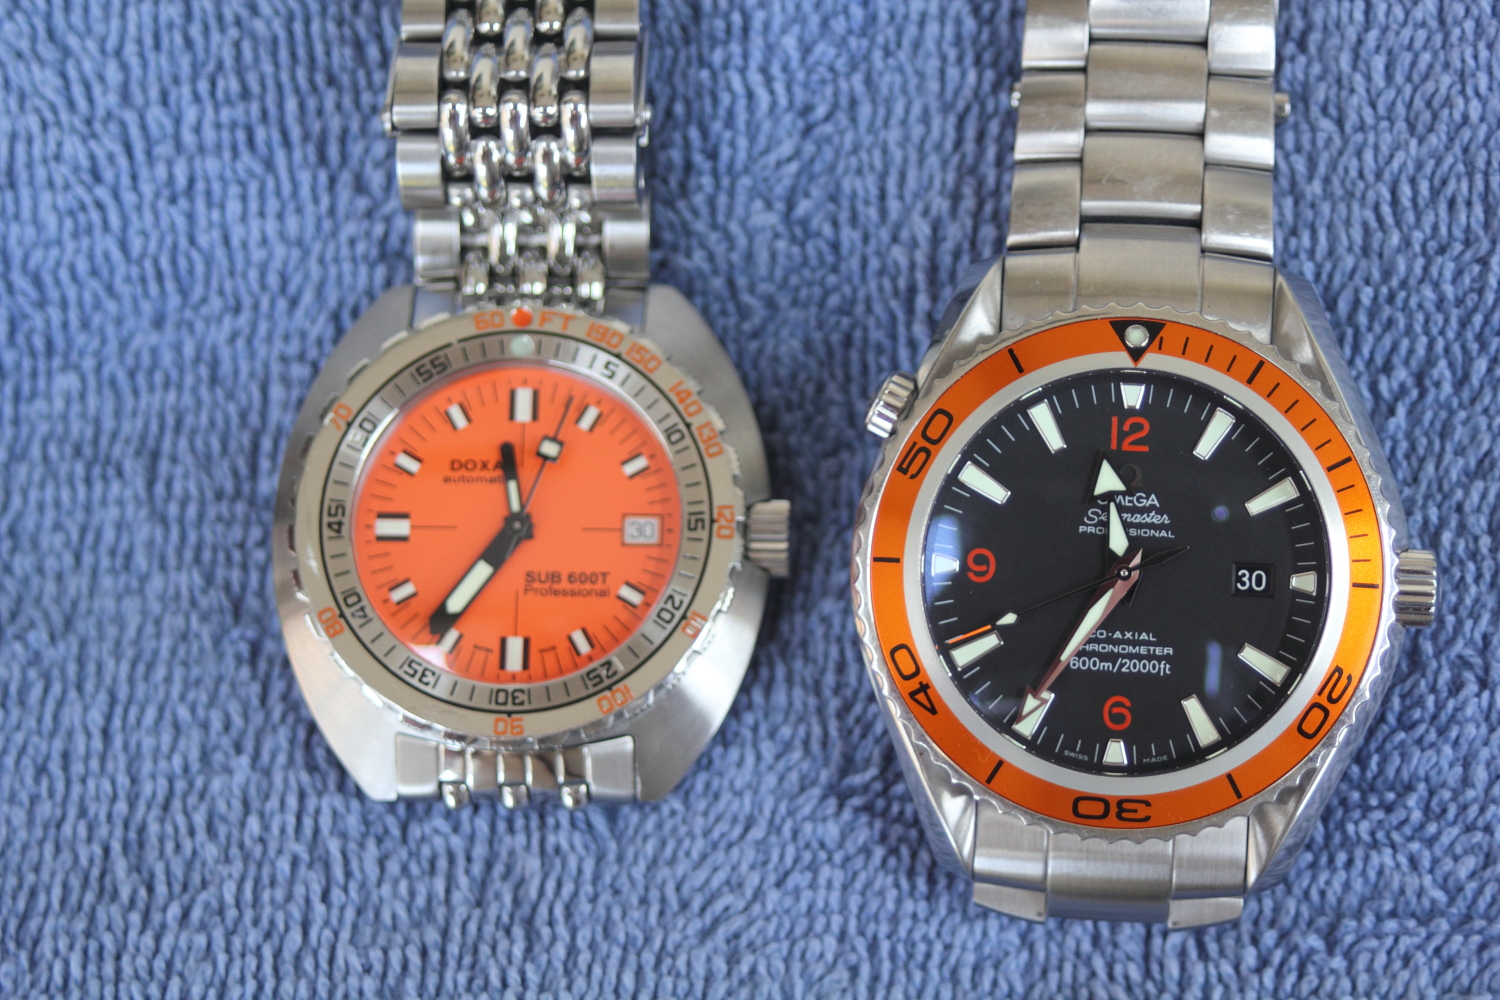 dress watch vs dive watch in search of the perfect watch the doxa 600t vs the